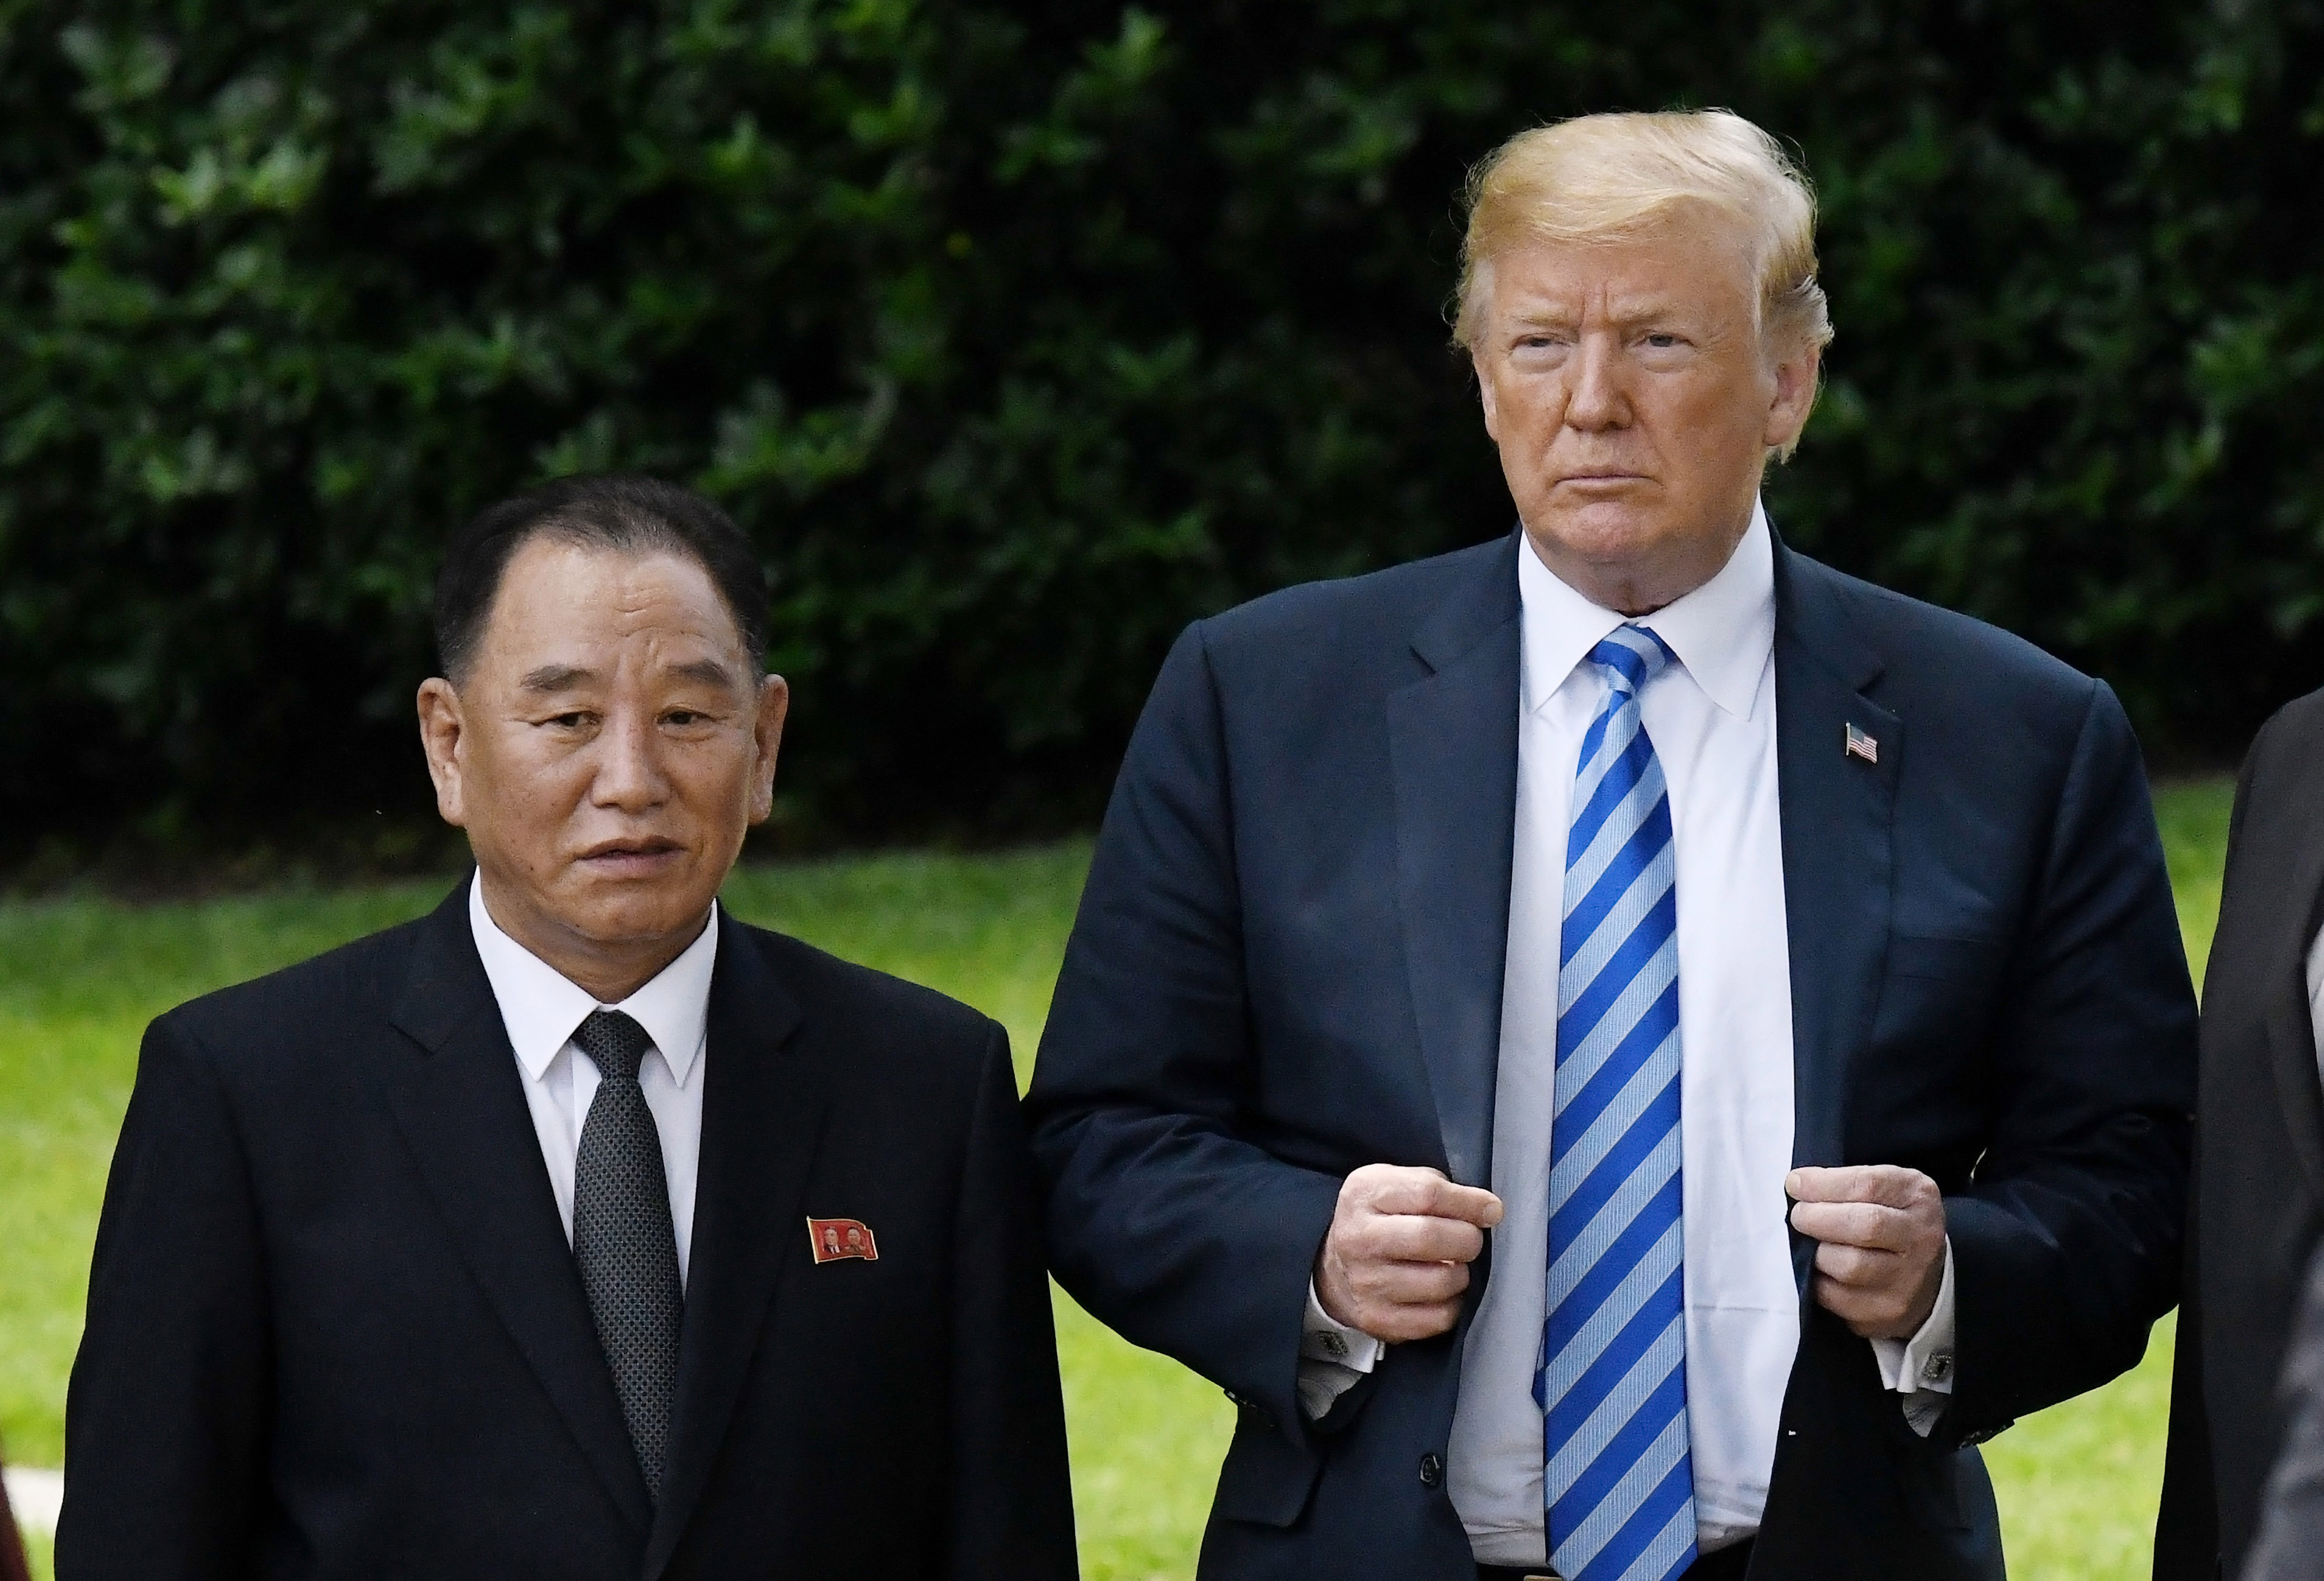 WASHINGTON, DC - JUNE 01: US President Donald Trump stands with Kim Yong Chol, former North Korean military intelligence chief and one of leader Kim Jong Un's closest aides, on the South Lawn of  the White House on June 1, 2018 in Washington, DC. Both Trump and Kim Yong Chol are trying to salvage a recently canceled historic summit between US President Donald Trump and North Korean leader Kim Jong-un scheduled for June 12. (Photo by Olivier Douliery-Pool/Getty Images)